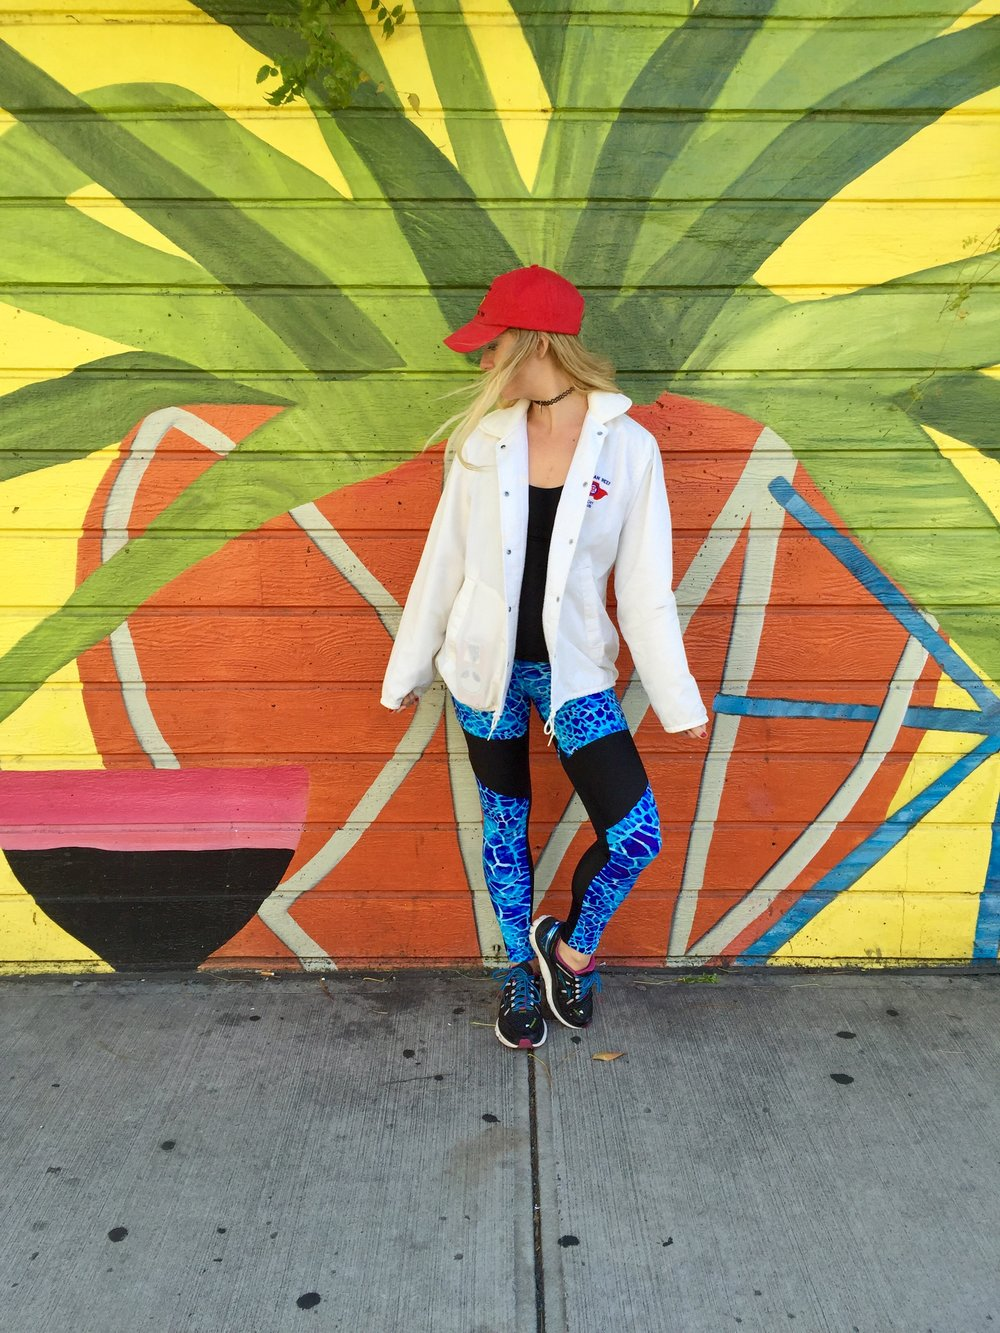 Hat and Jacket: Vintage, Top: Lululemon, Leggings: Zion's Den Apparel, Sneakers: Brooks Running